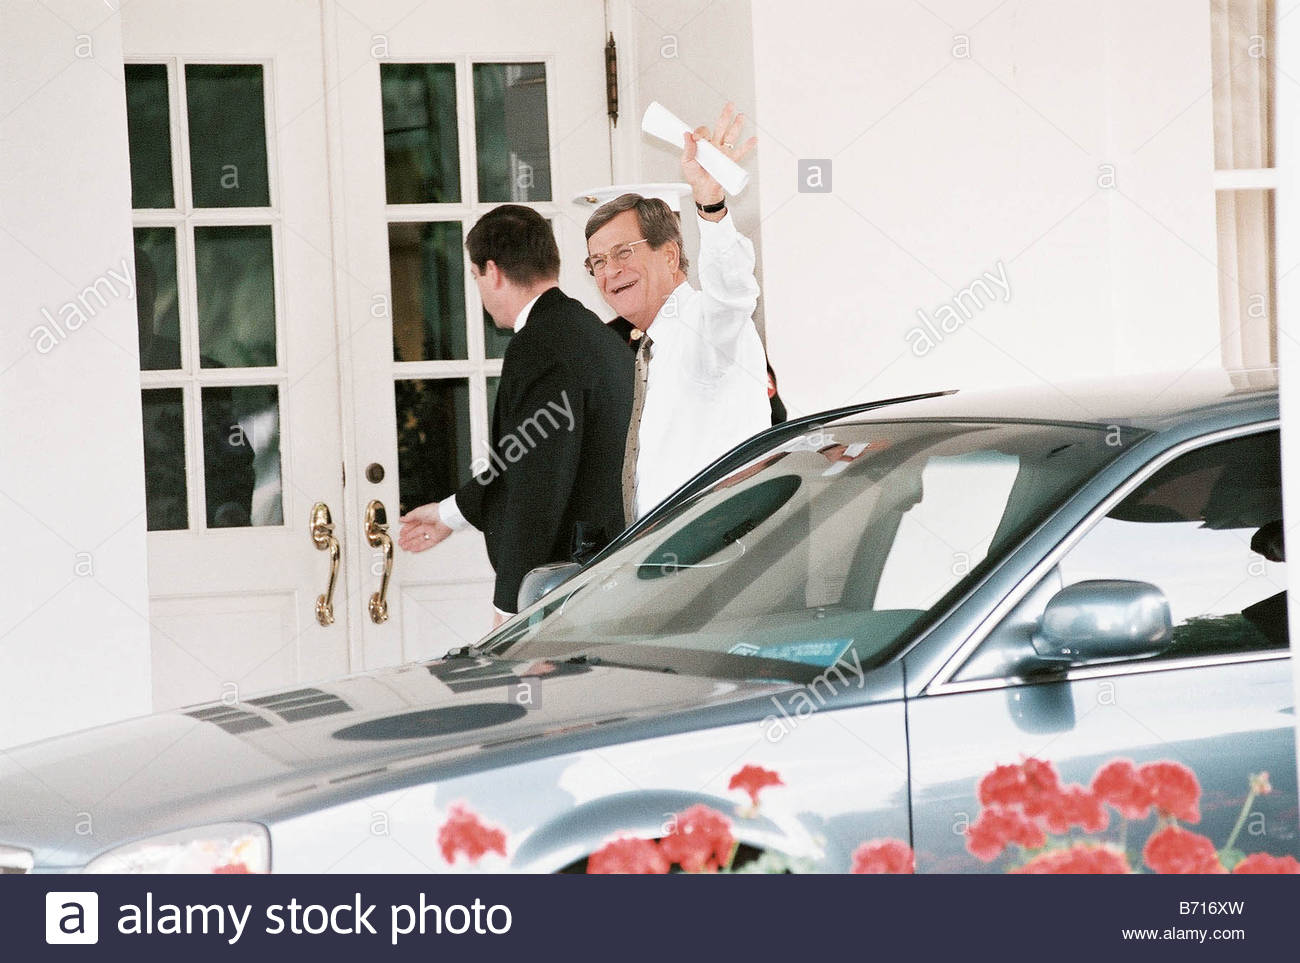 9 12 00 WHITE HOUSE MEETING Senate Majority Leader Trent Lott R Miss arrives at the White House for a meeting with - Stock Image